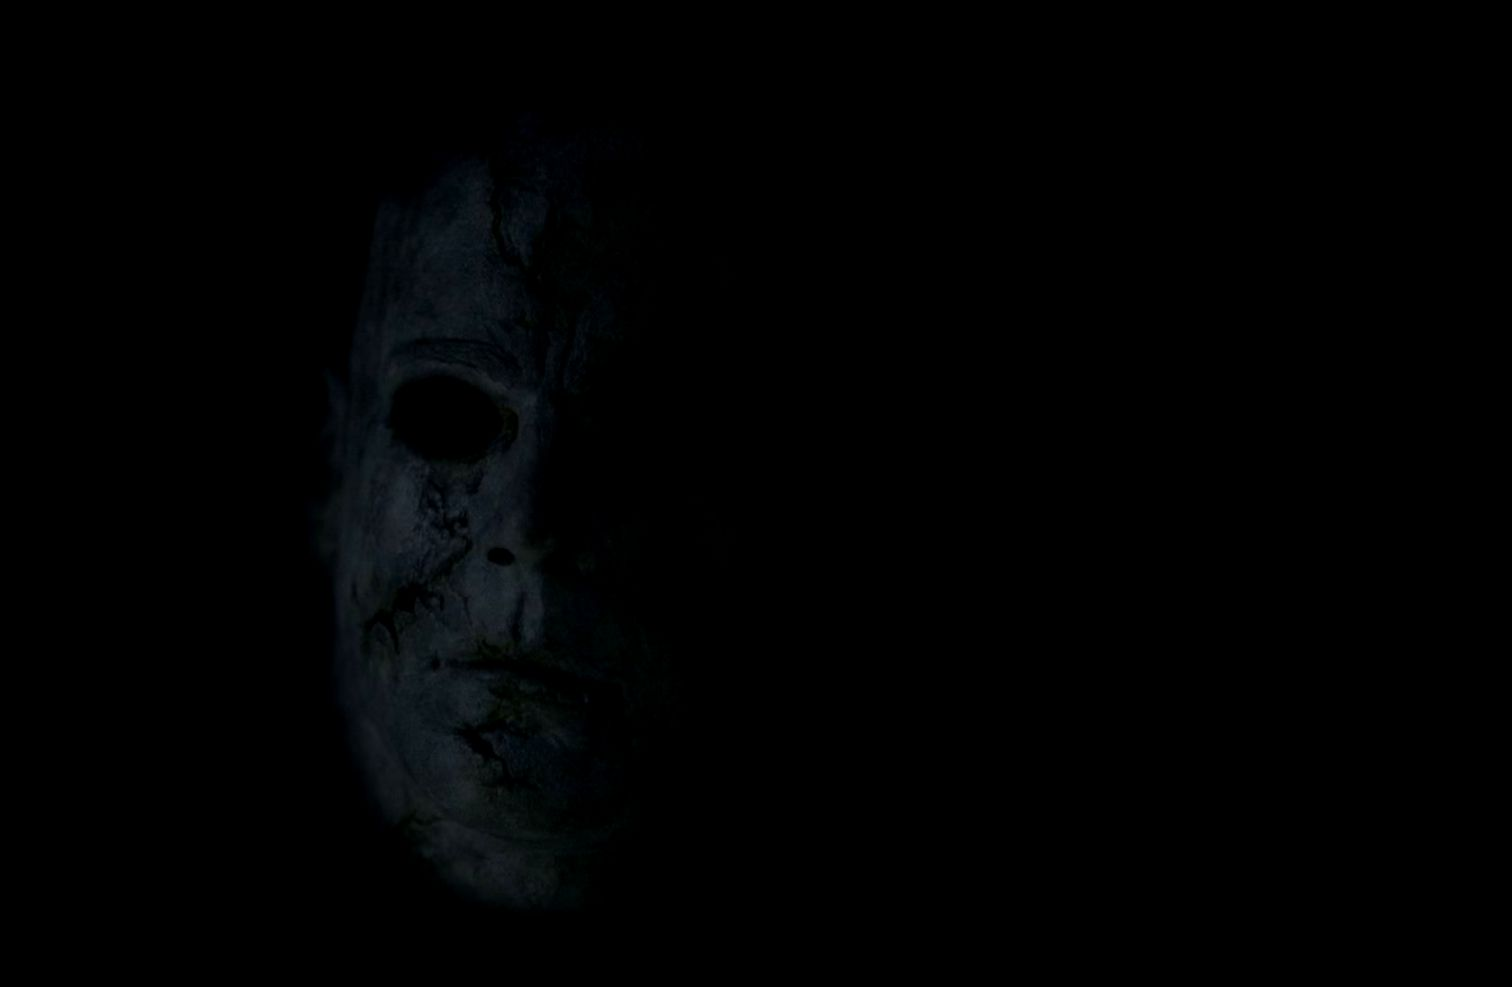 Scary Wallpaper Backgrounds Top Wallpapers